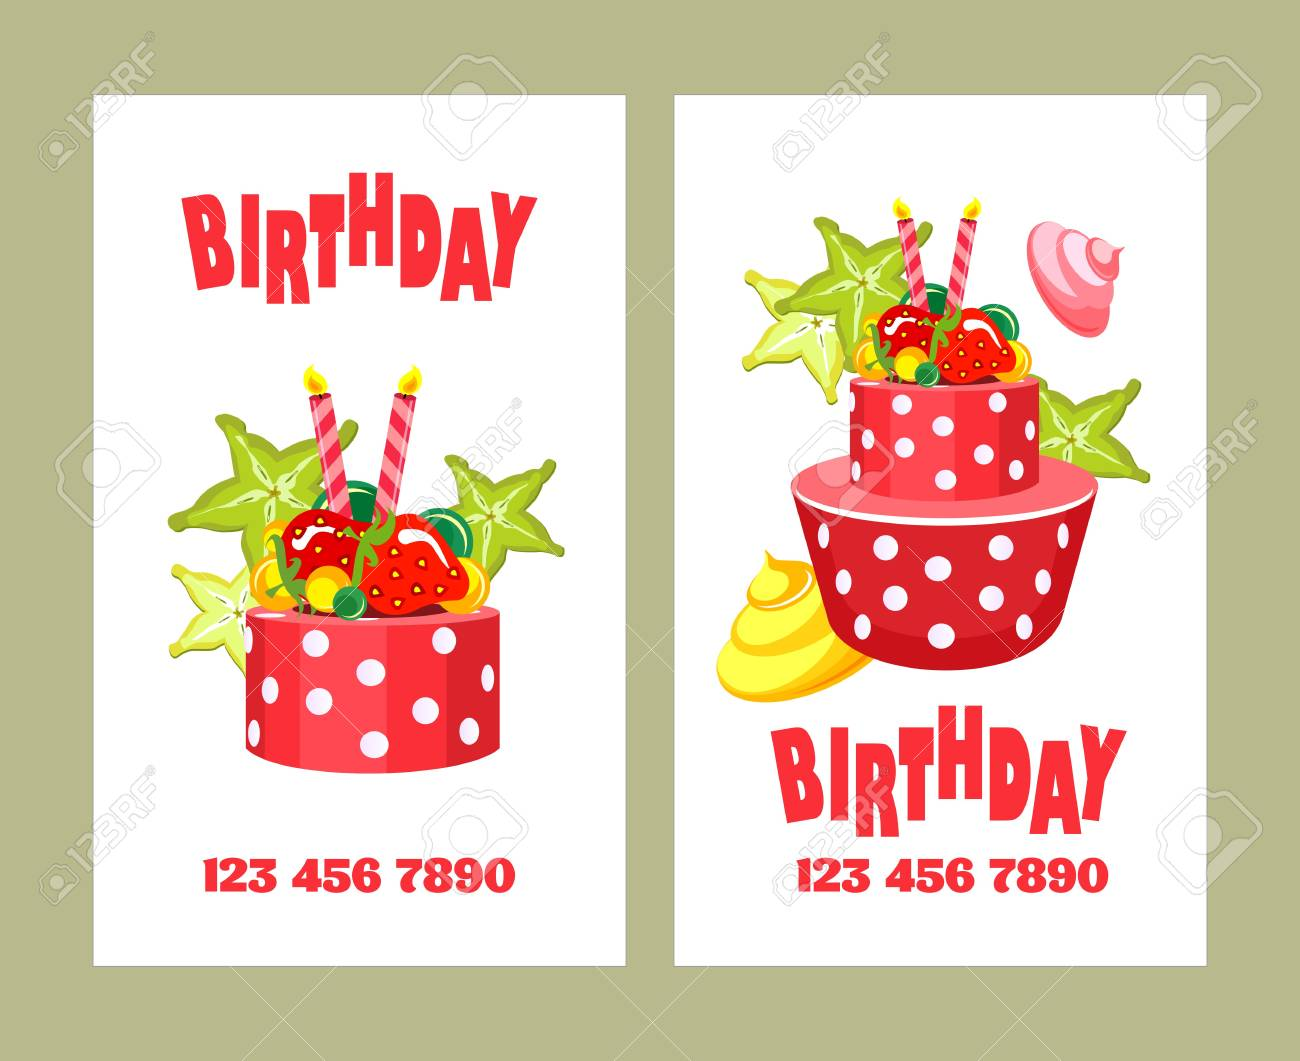 Cards On Holidays Birthdays Can Be Used For Printing Advertising Business